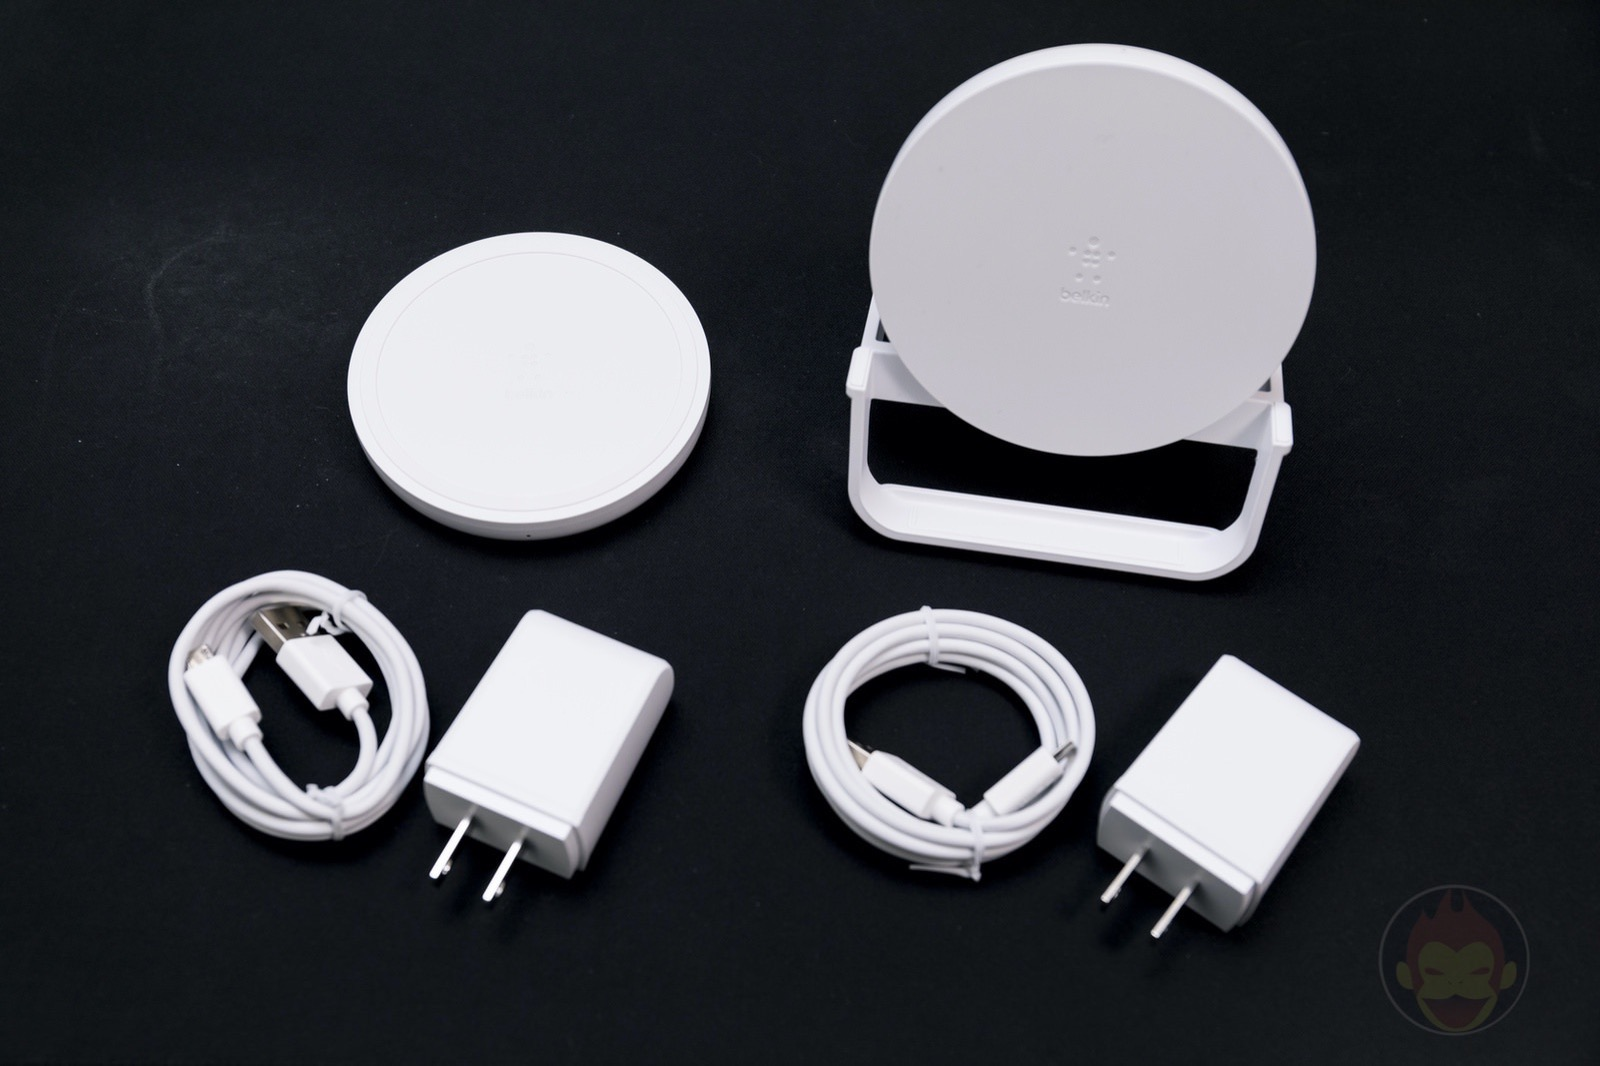 Using-Belkin-Wireless-Charger-to-have-a-better-charging-life-19.jpg